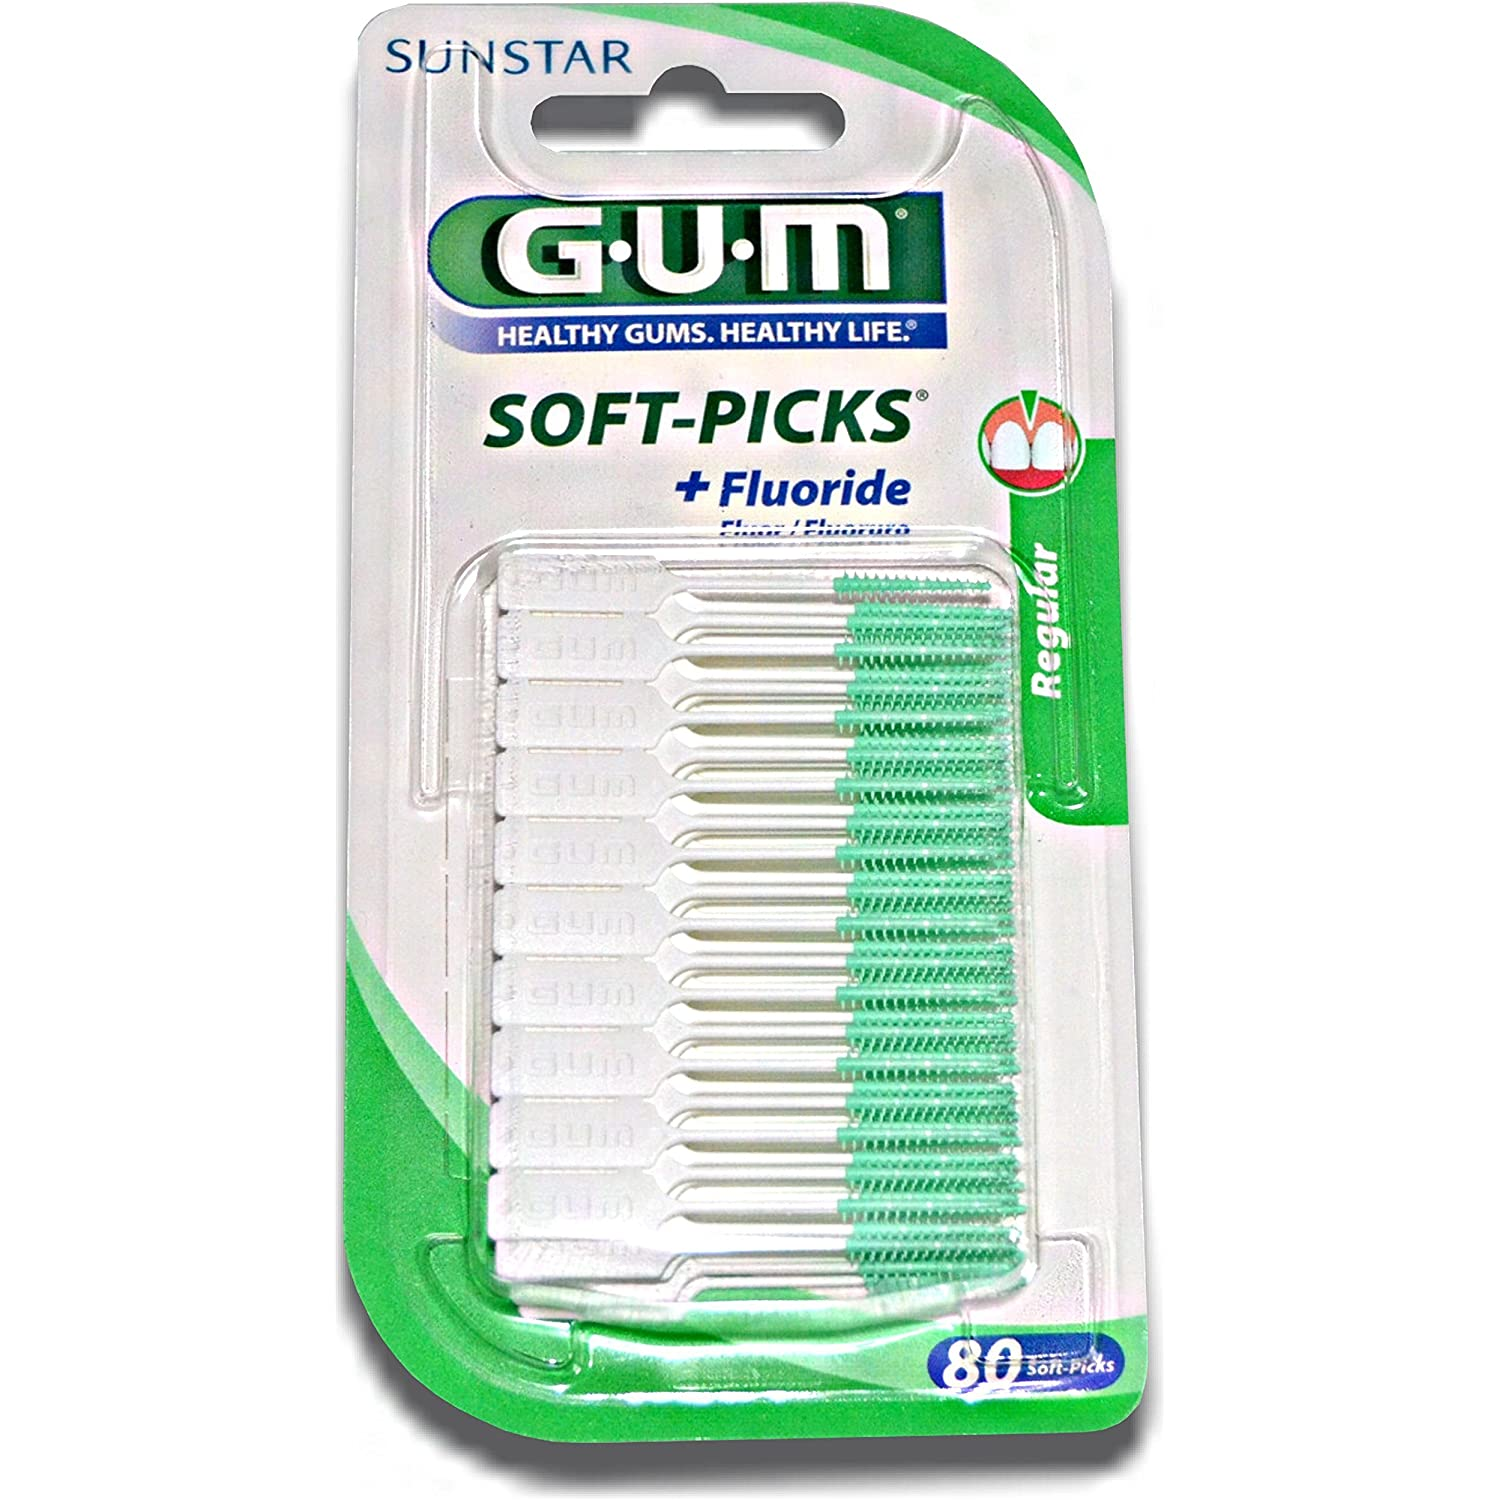 SunStar GUM Soft-Picks